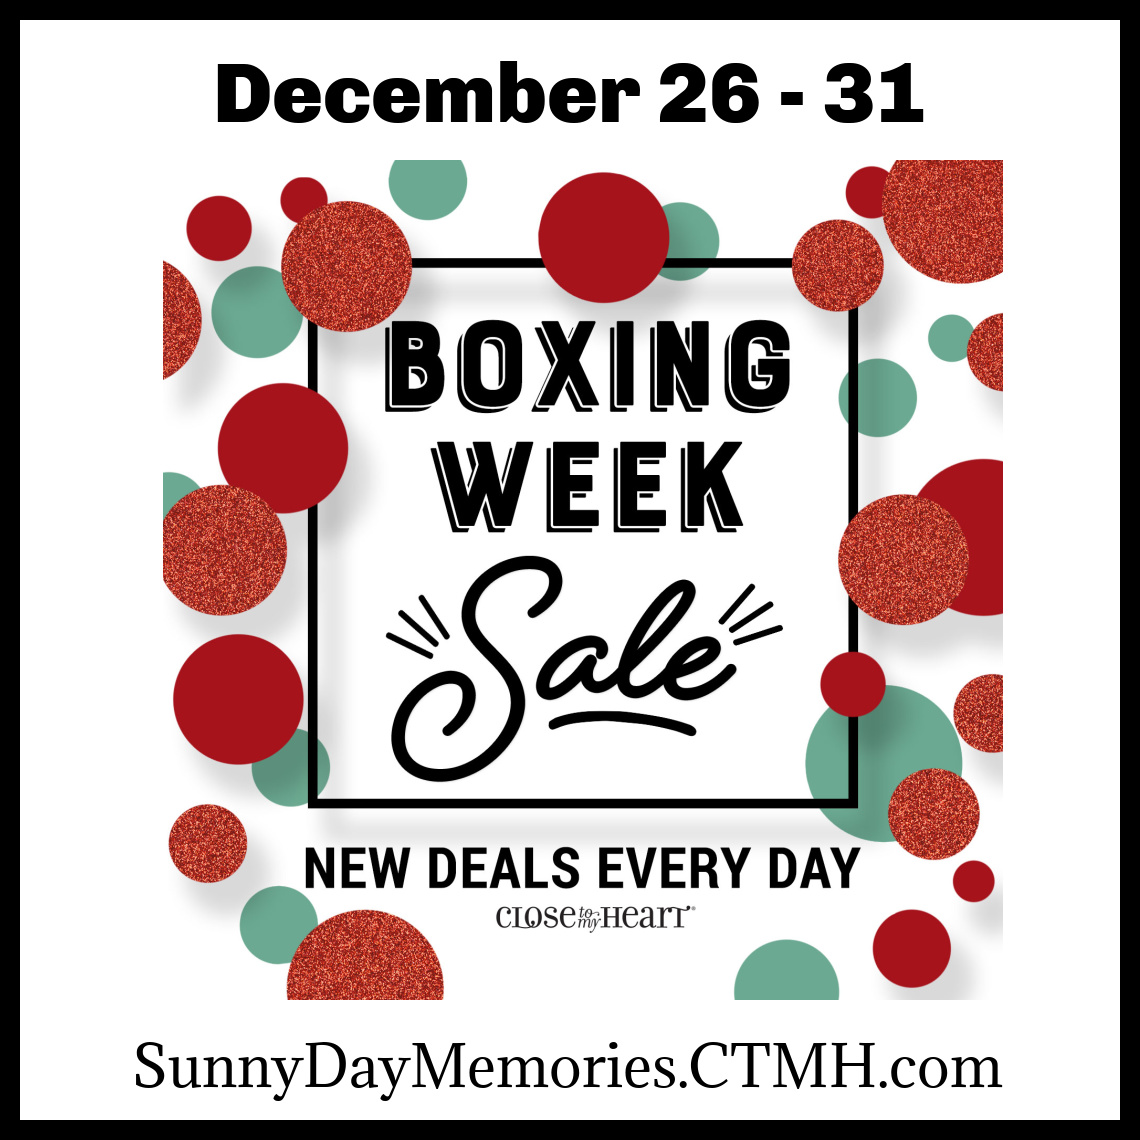 CTMH Boxing Week Sale